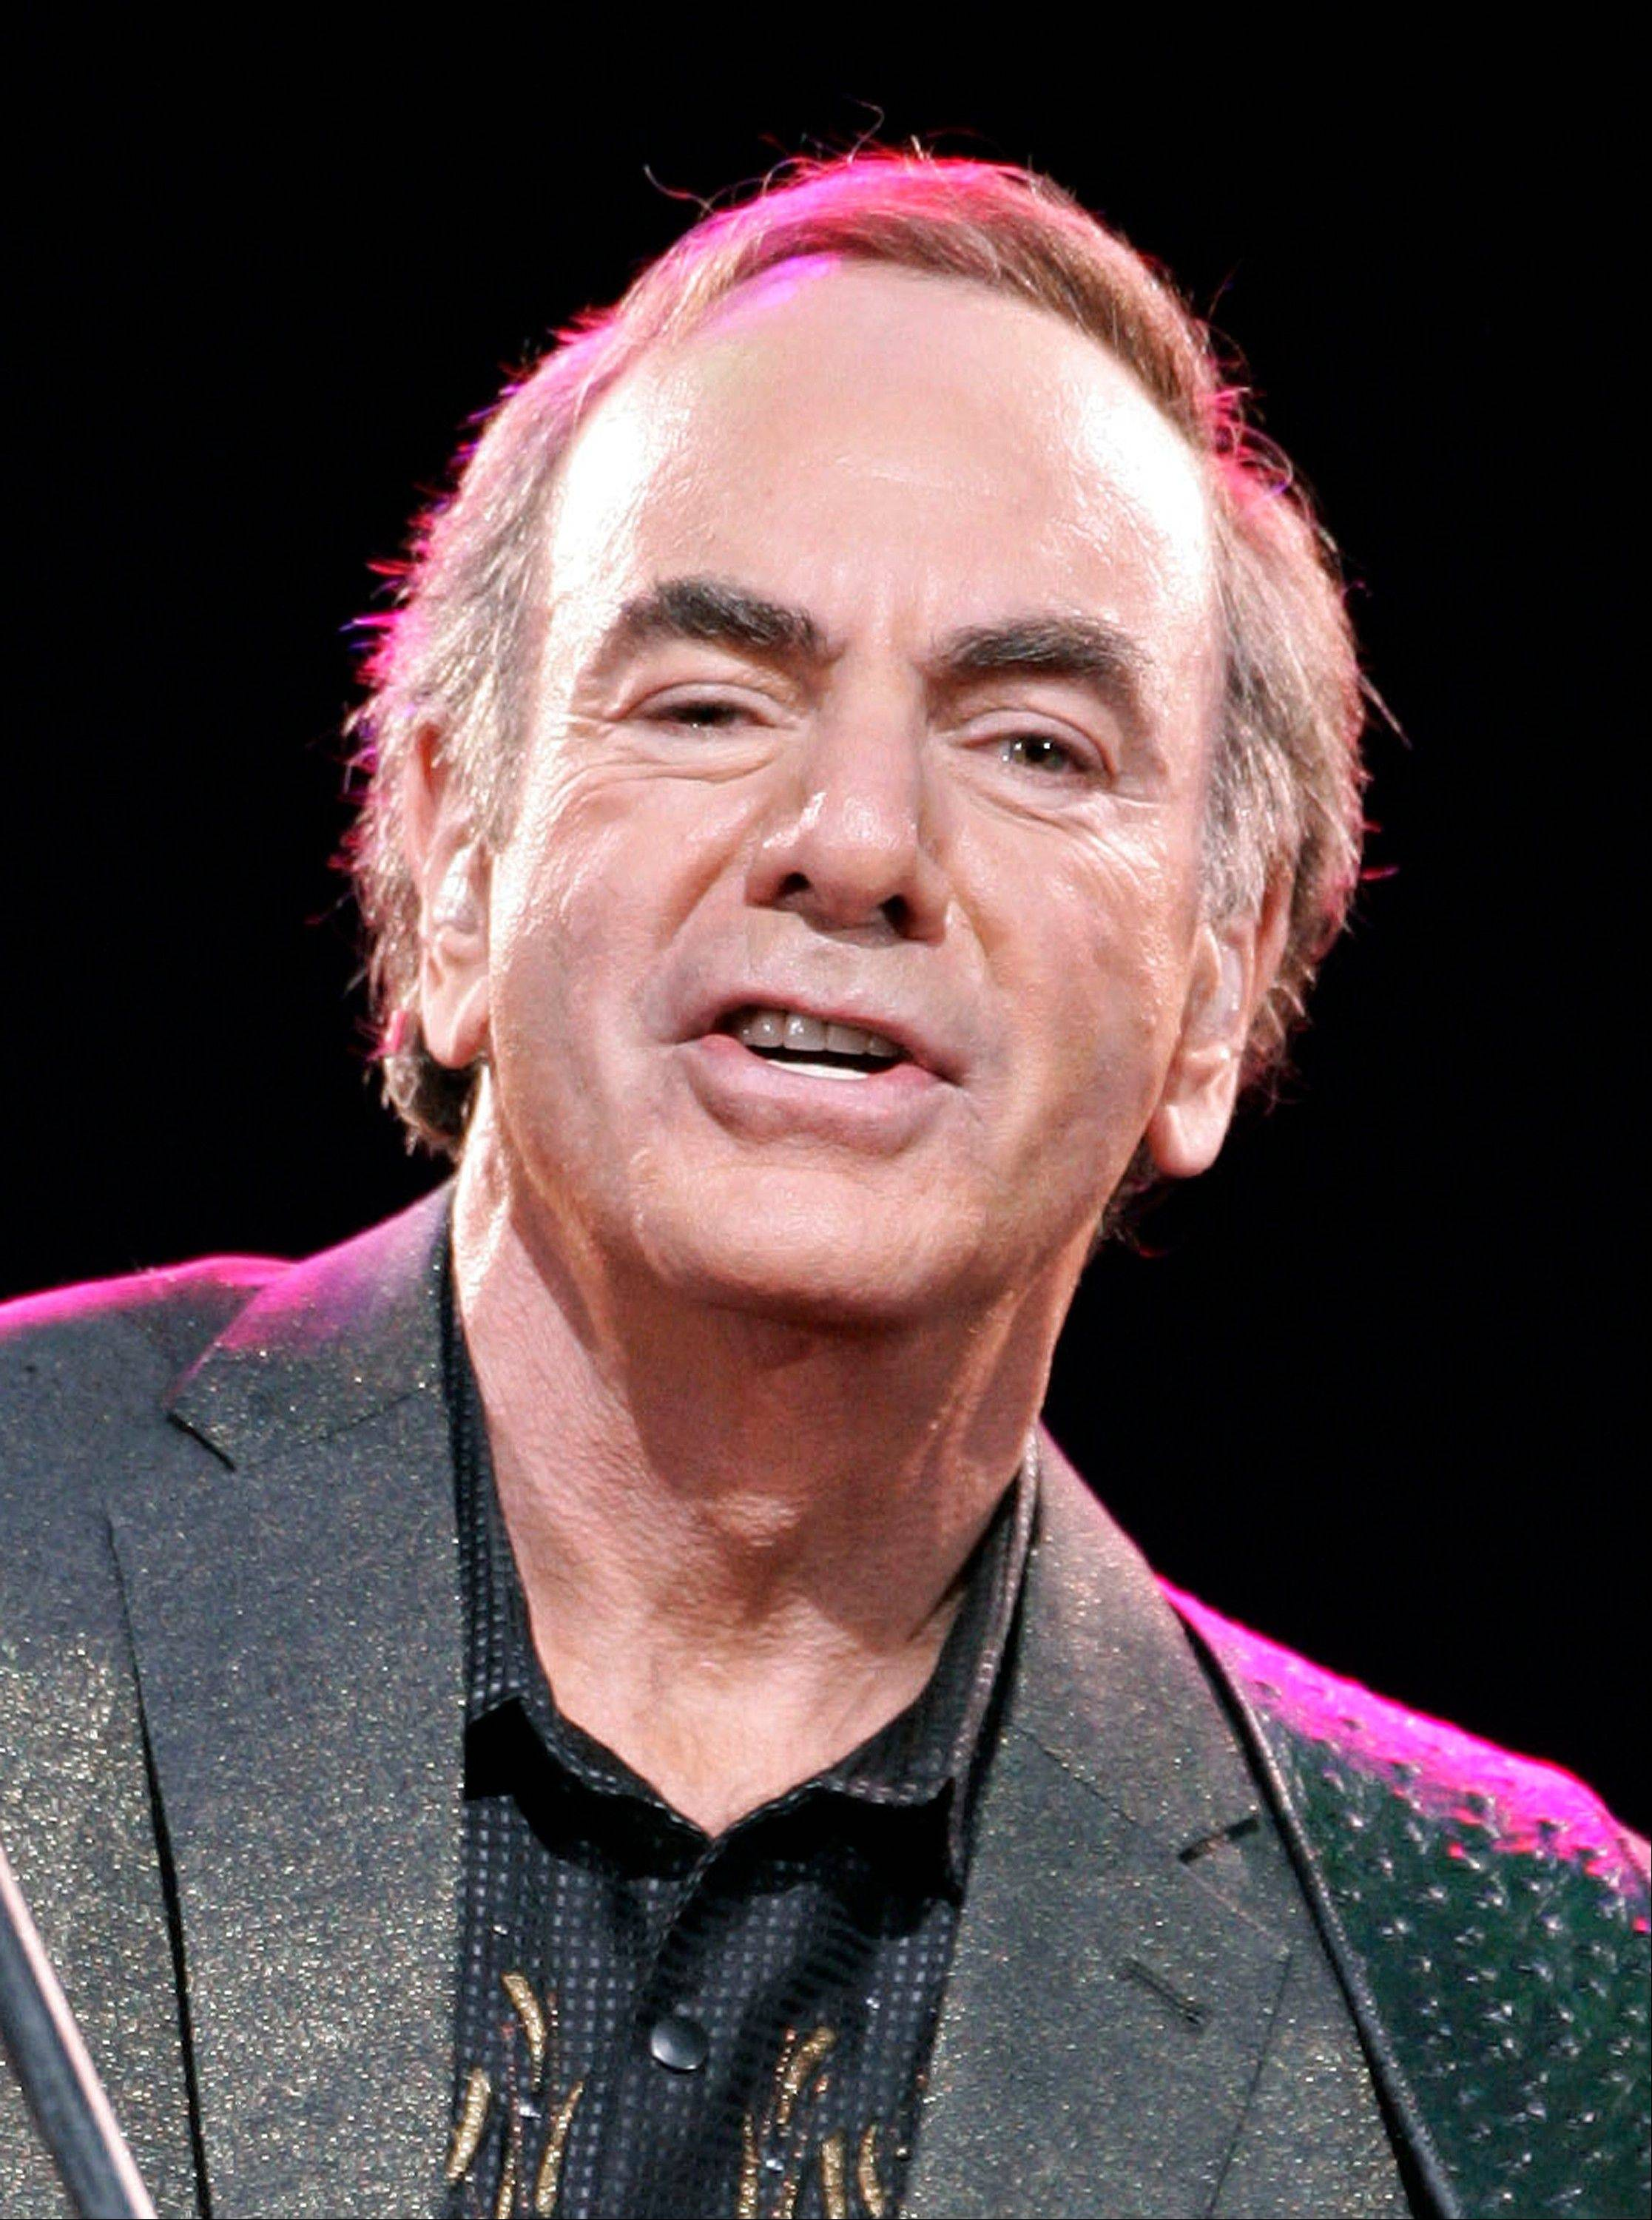 Singer Neil Diamond has been chosen to receive the Kennedy Center Honors this year along with some of the biggest names from Broadway, jazz, classical music and Hollywood.